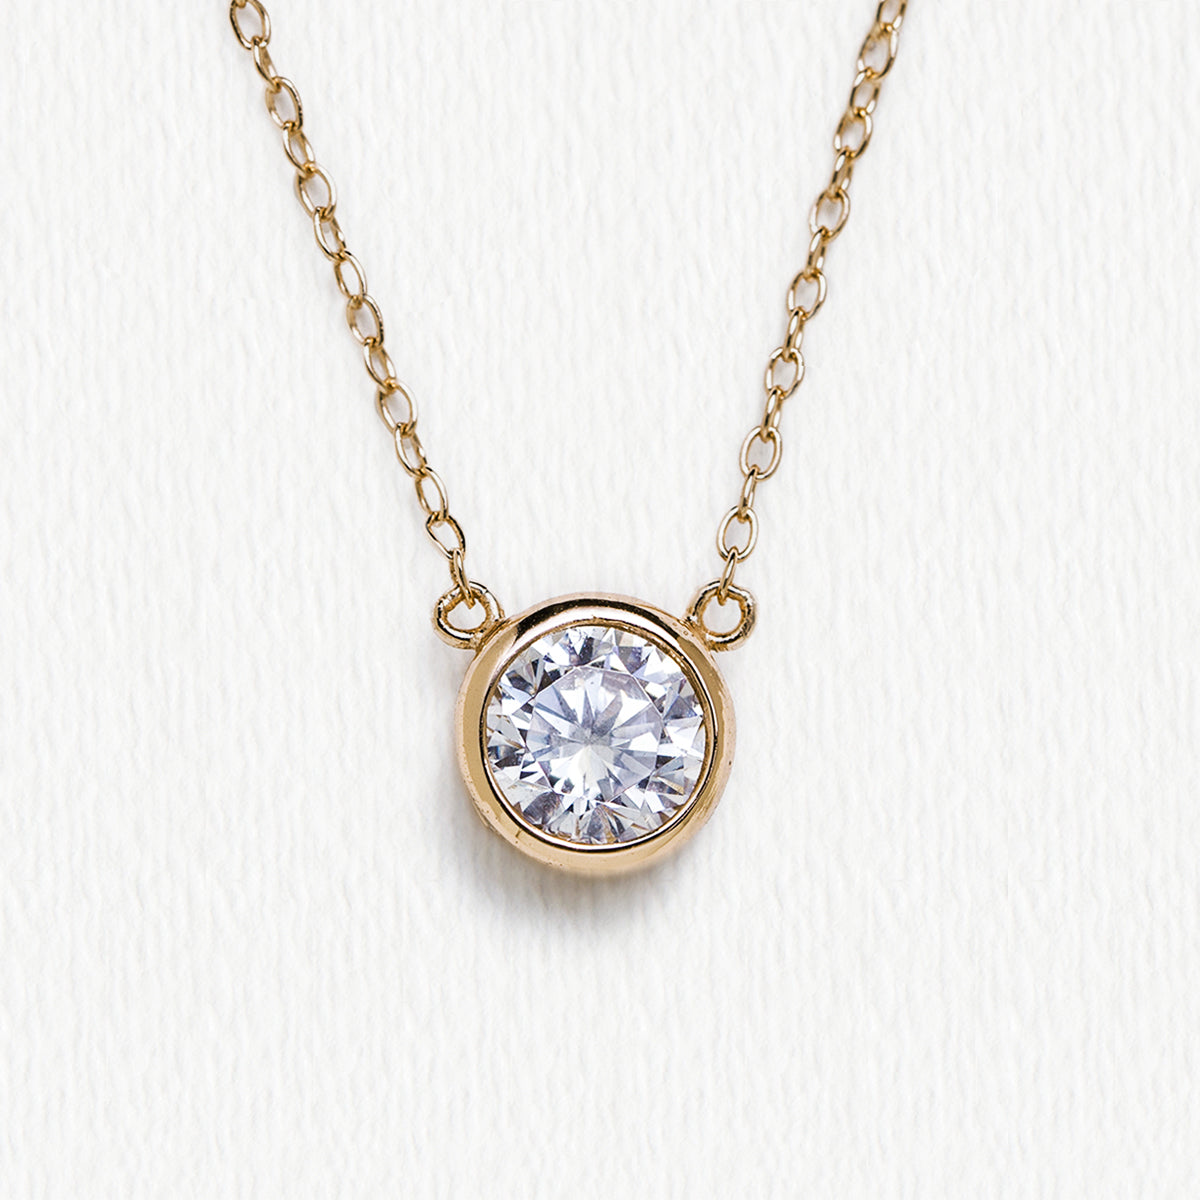 Gold Solitaire Pendant Necklace